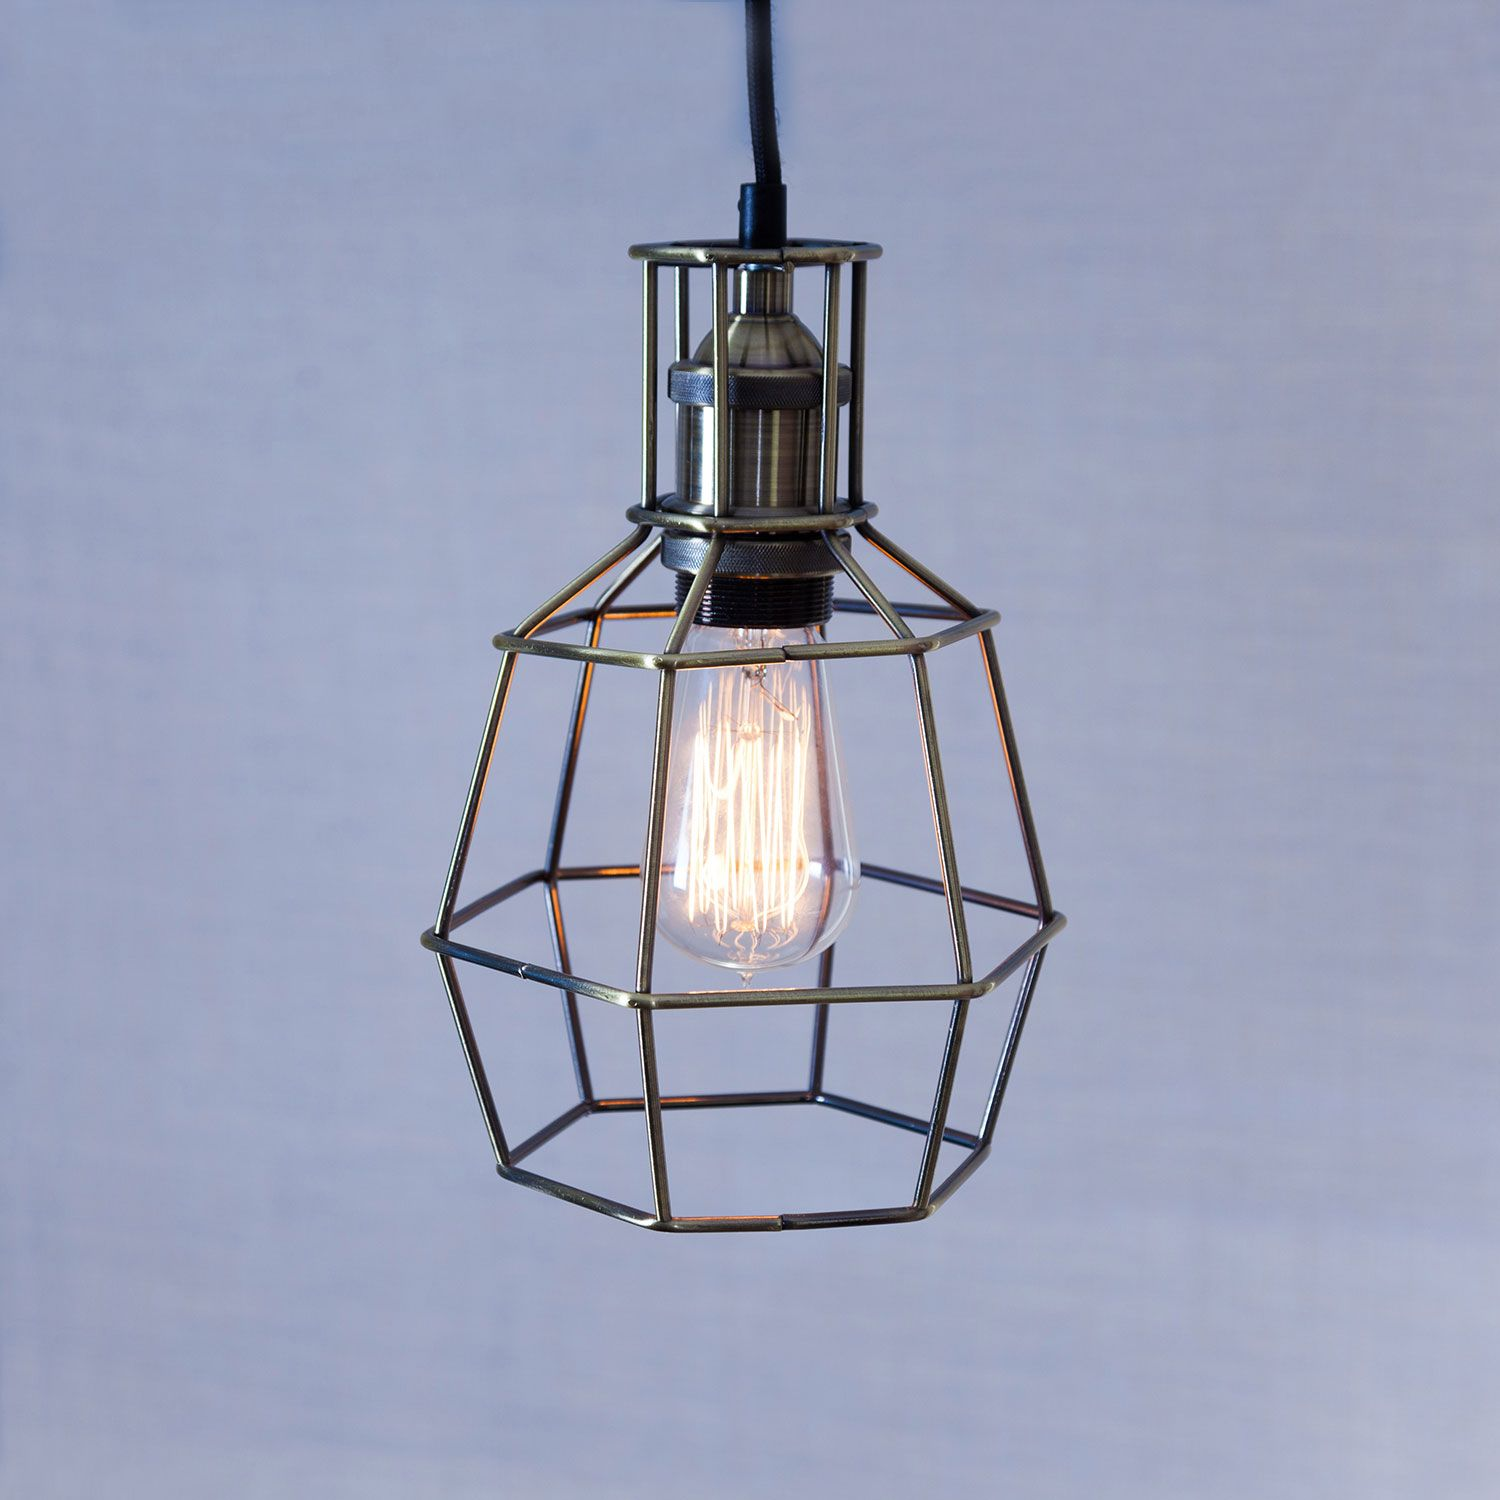 vintage lighting pendants. Clinton Antiqued Brass Caged Pendant Light With Vintage Bulb, Industrial And In Feel, Lighting Pendants